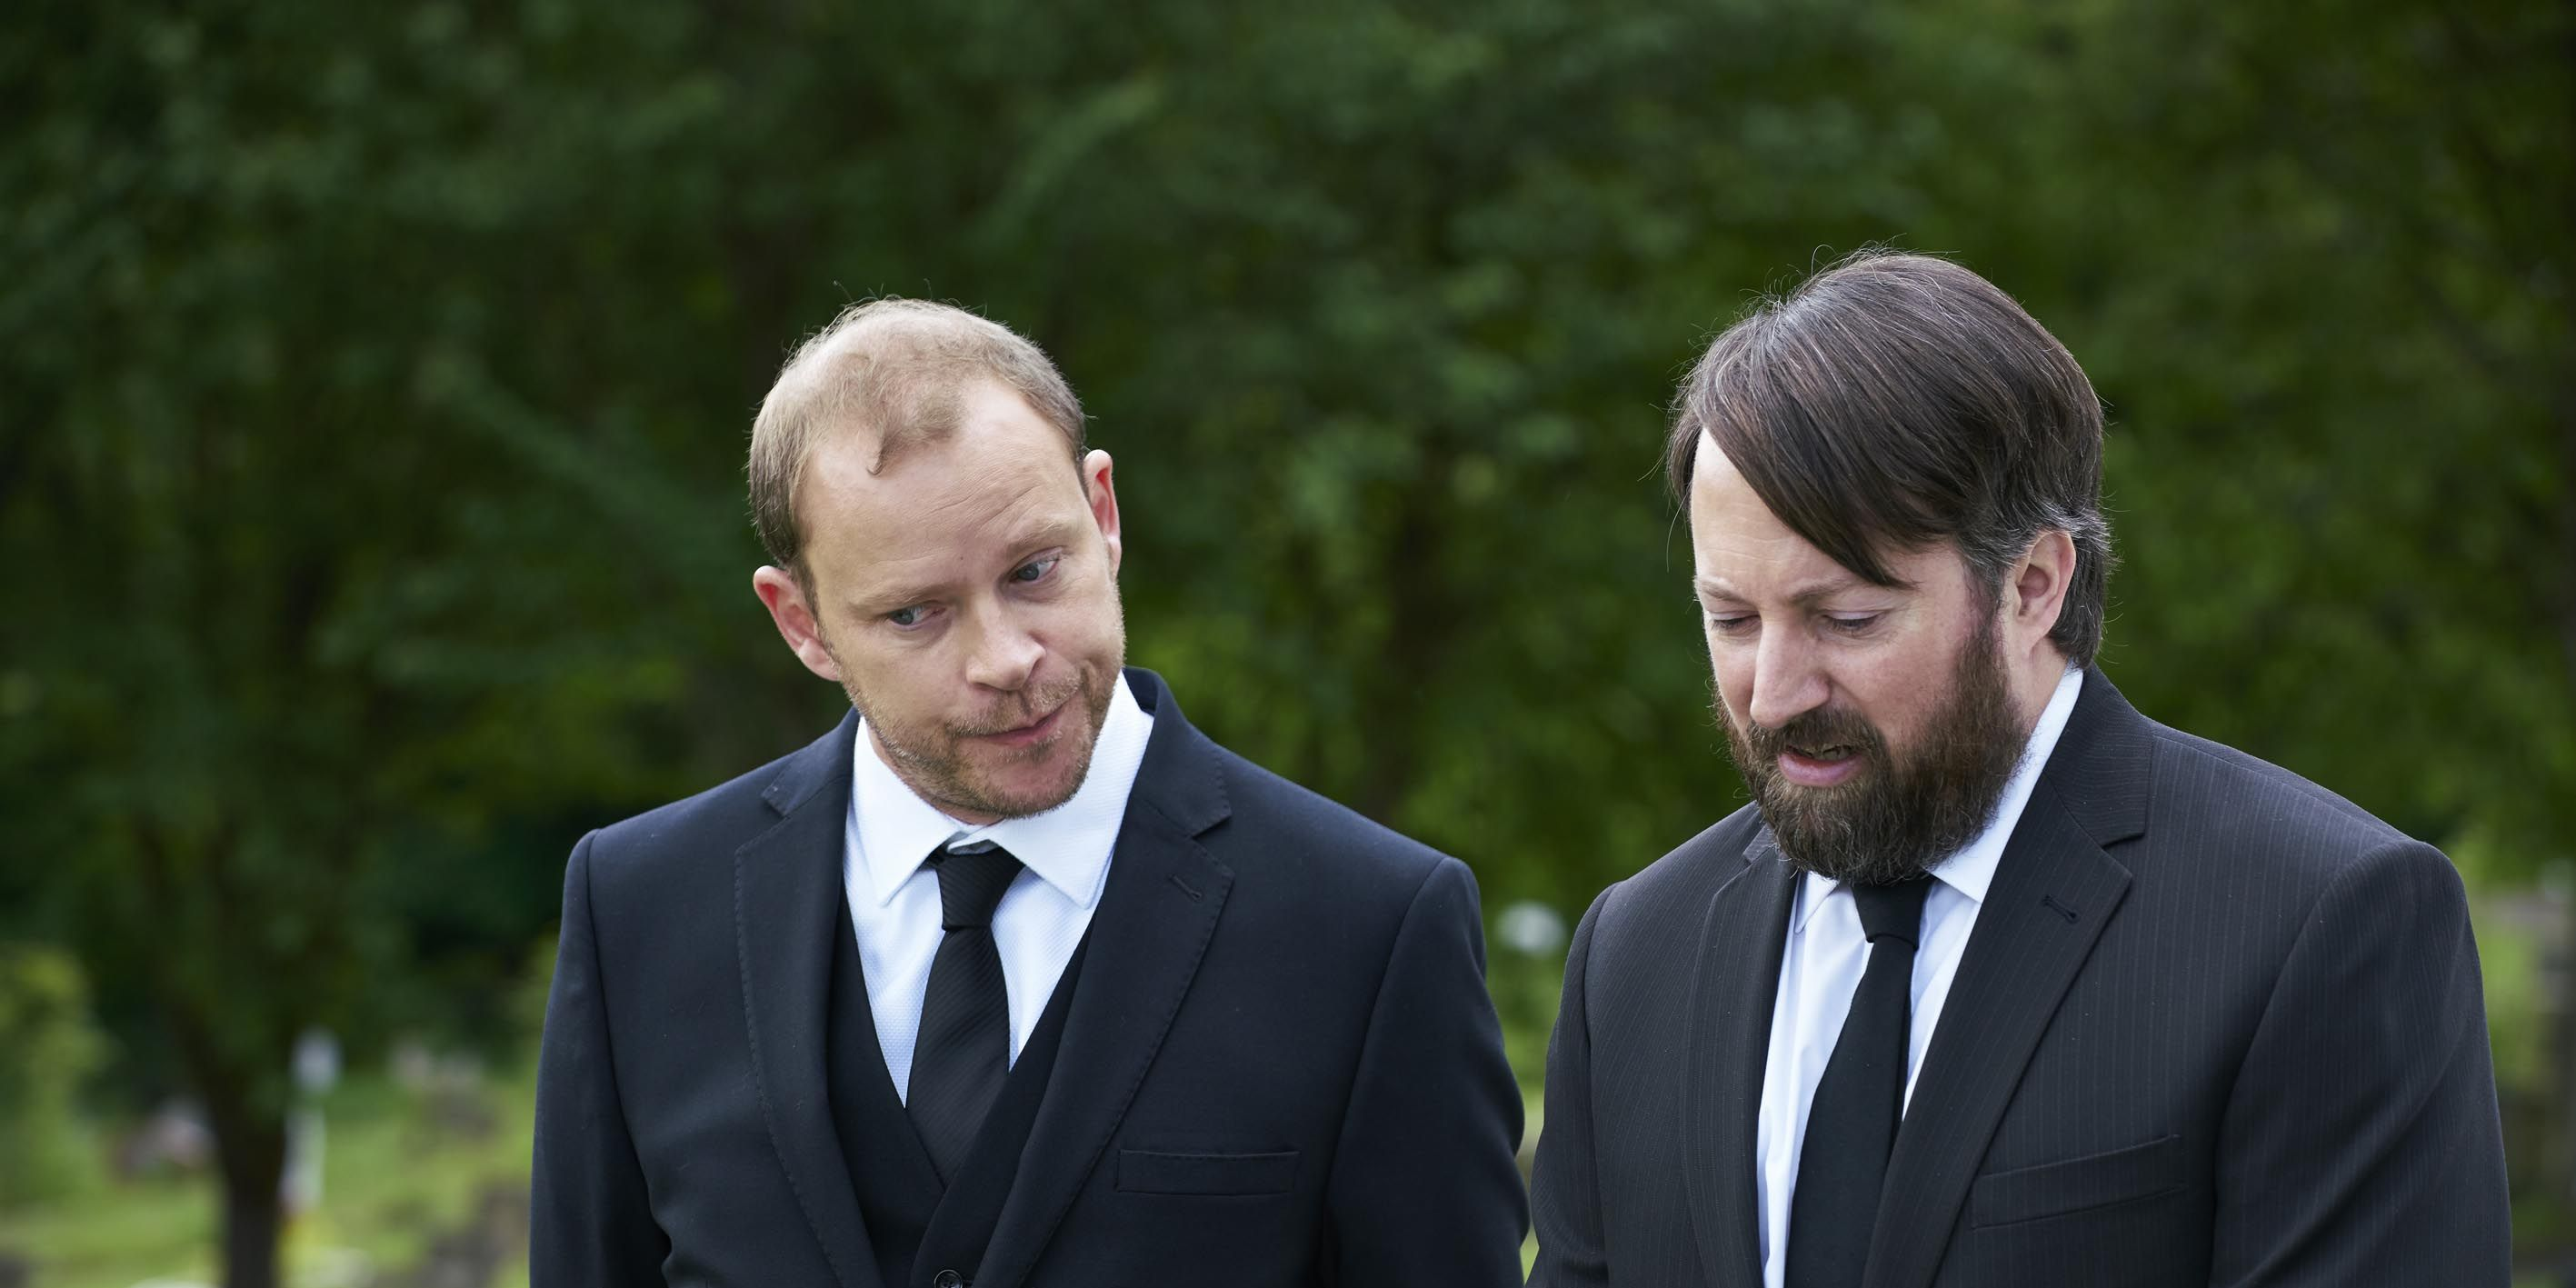 Robert Webb and David Mitchell in 'Back'